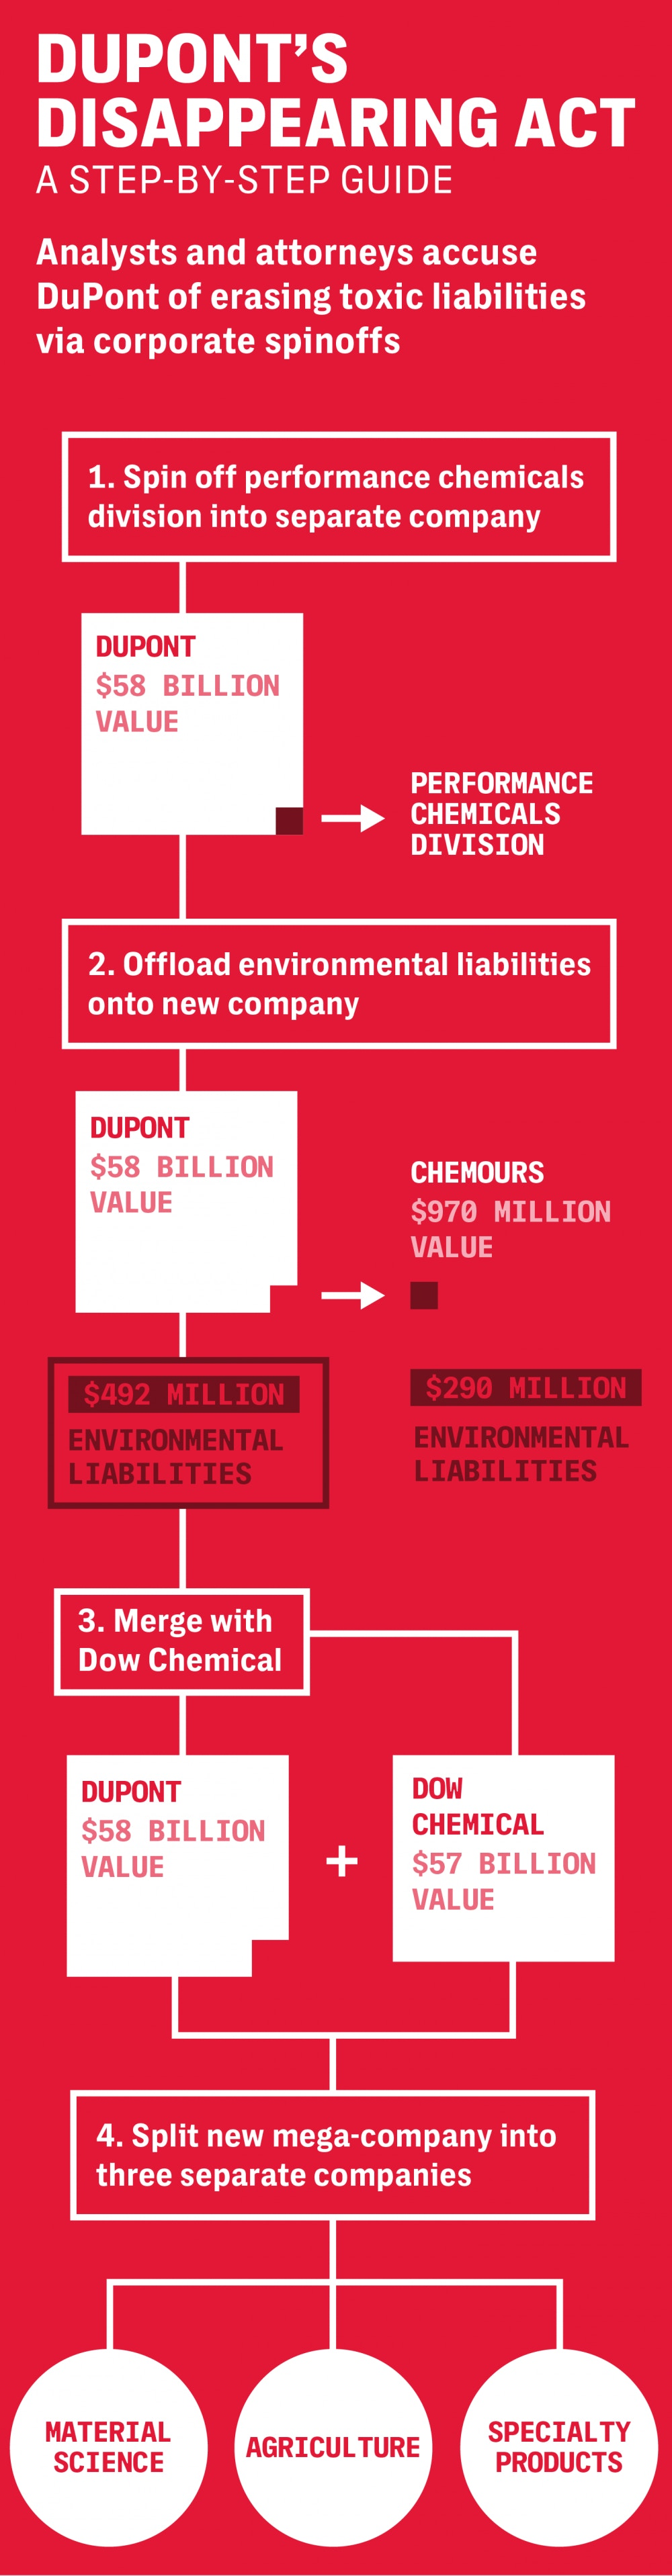 DuPont's Disappearing Act – The Intercept